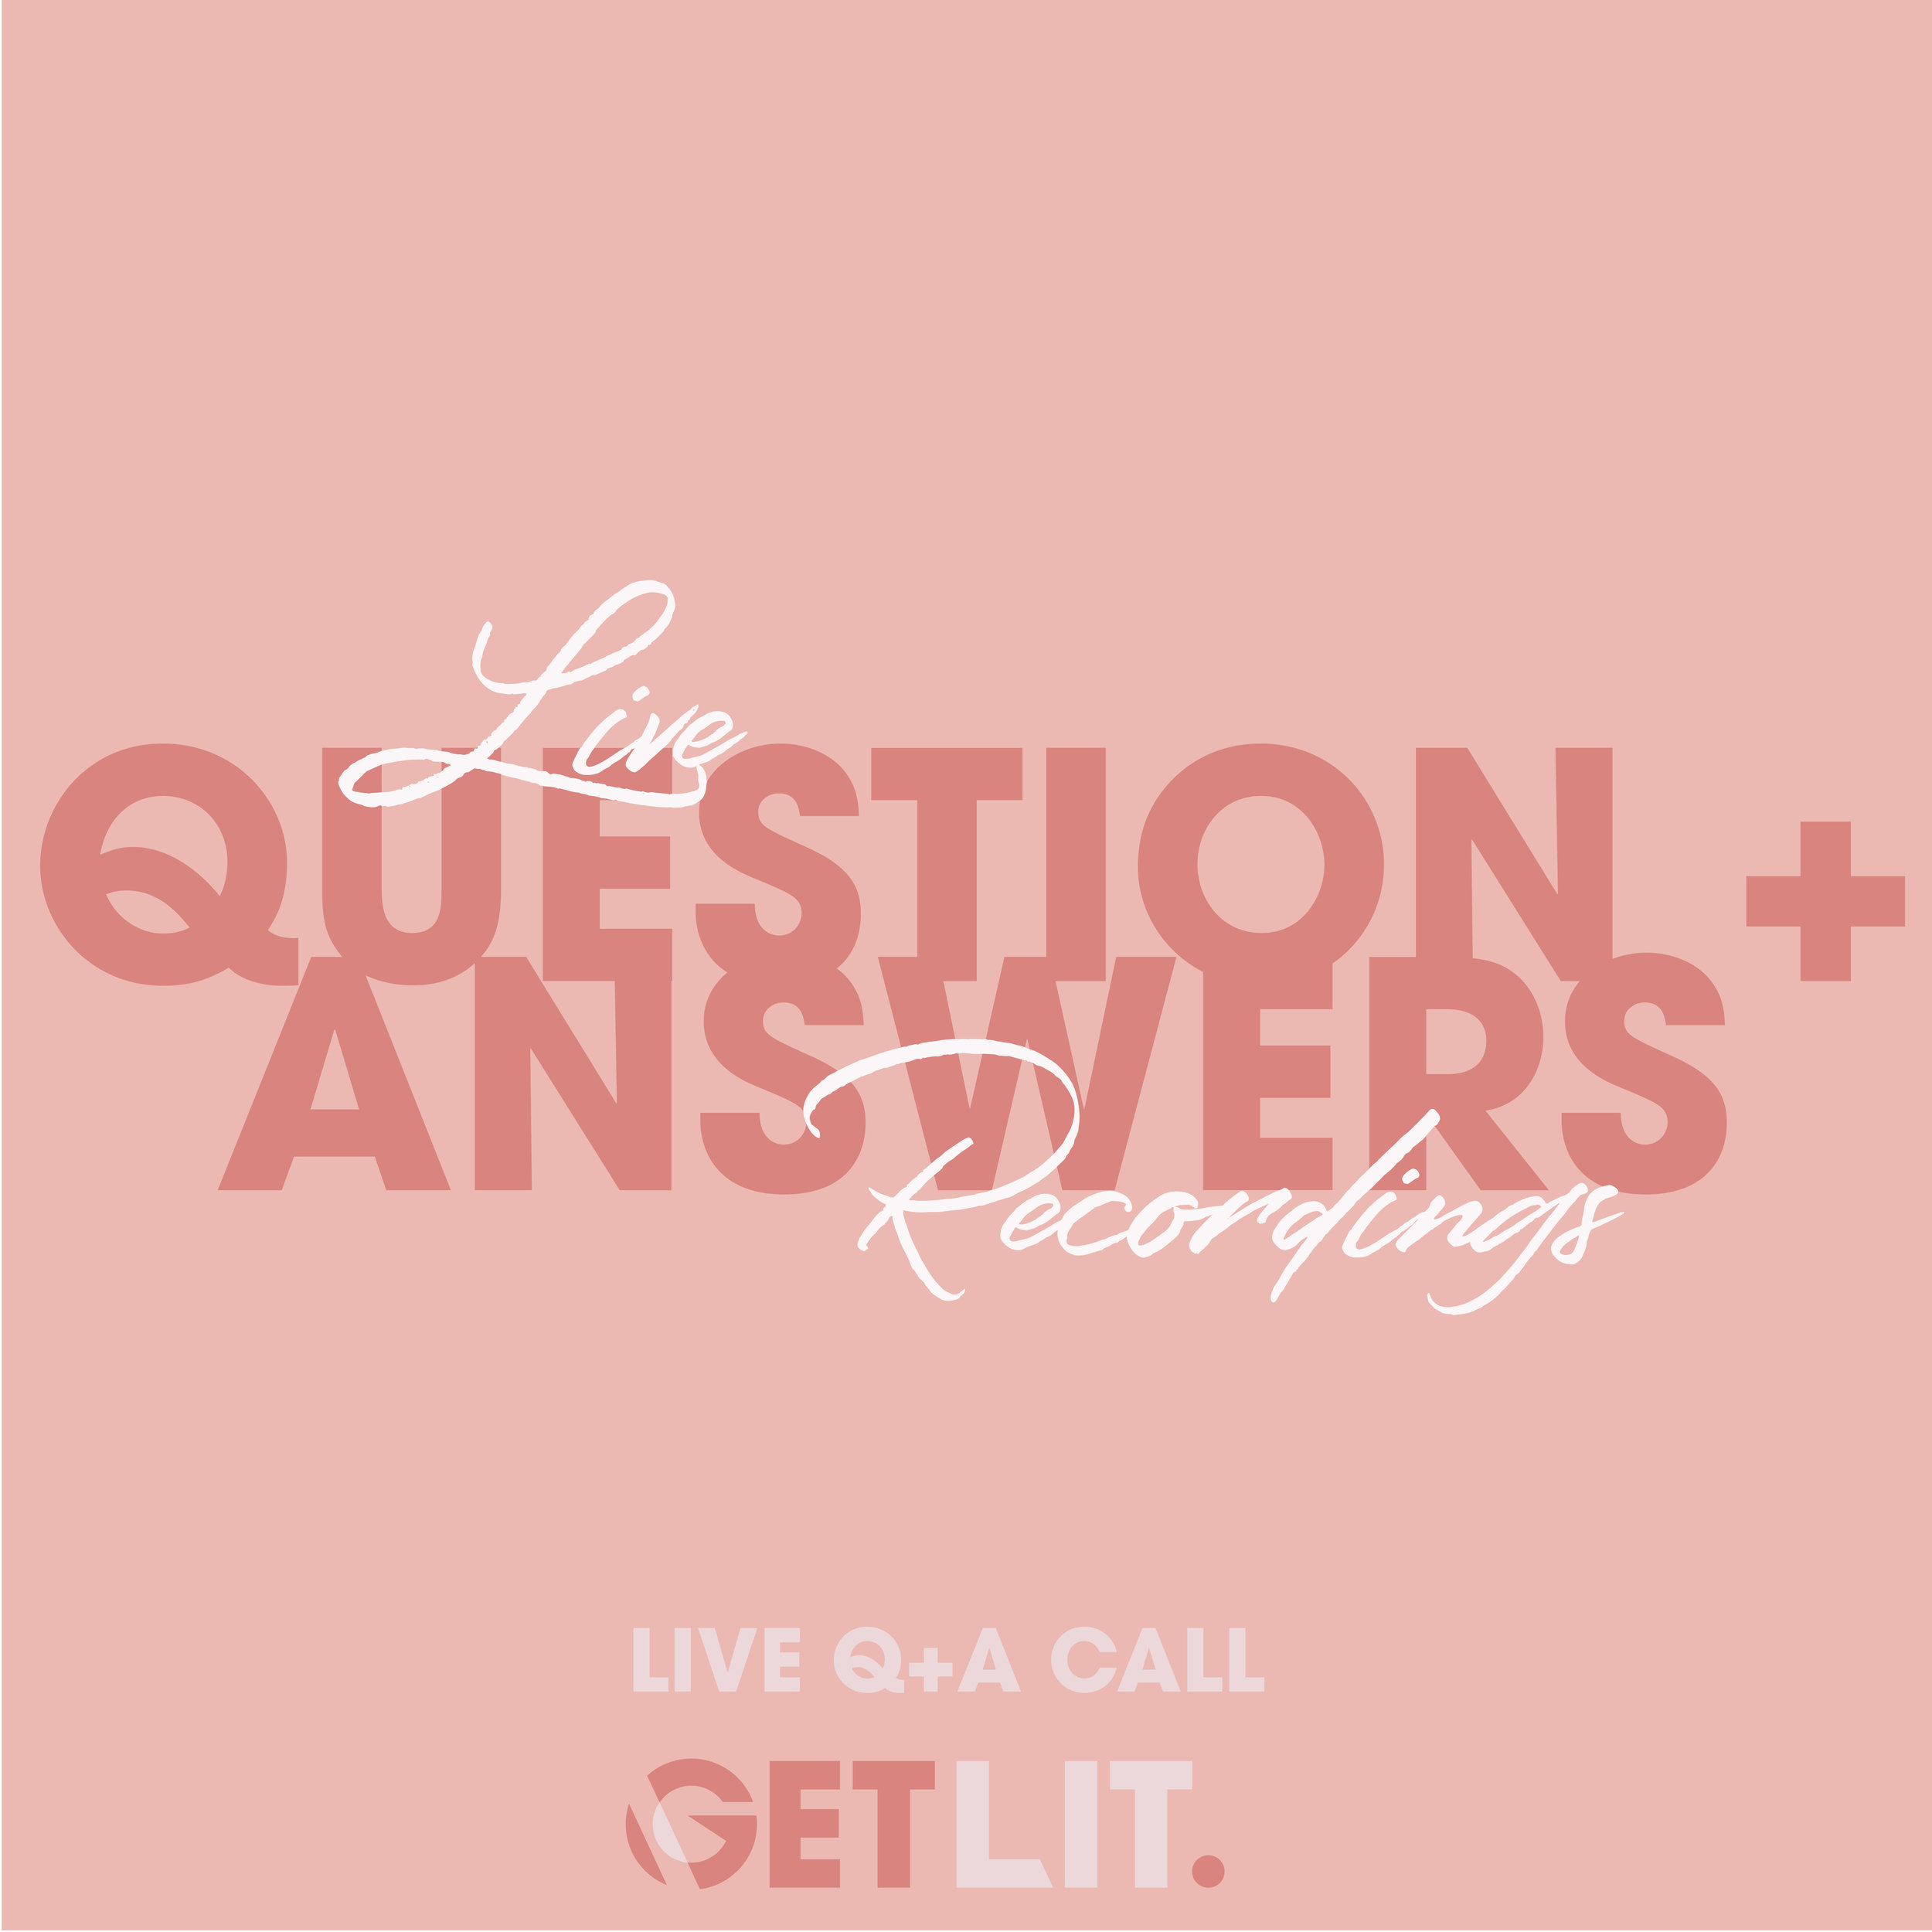 YOUR LIVE Q+A RECORDINGS - Here is where you will find all the Q+A recordings from previous calls held live by founder Becki Rabin,If you missed them live, this is your chance to catch up!